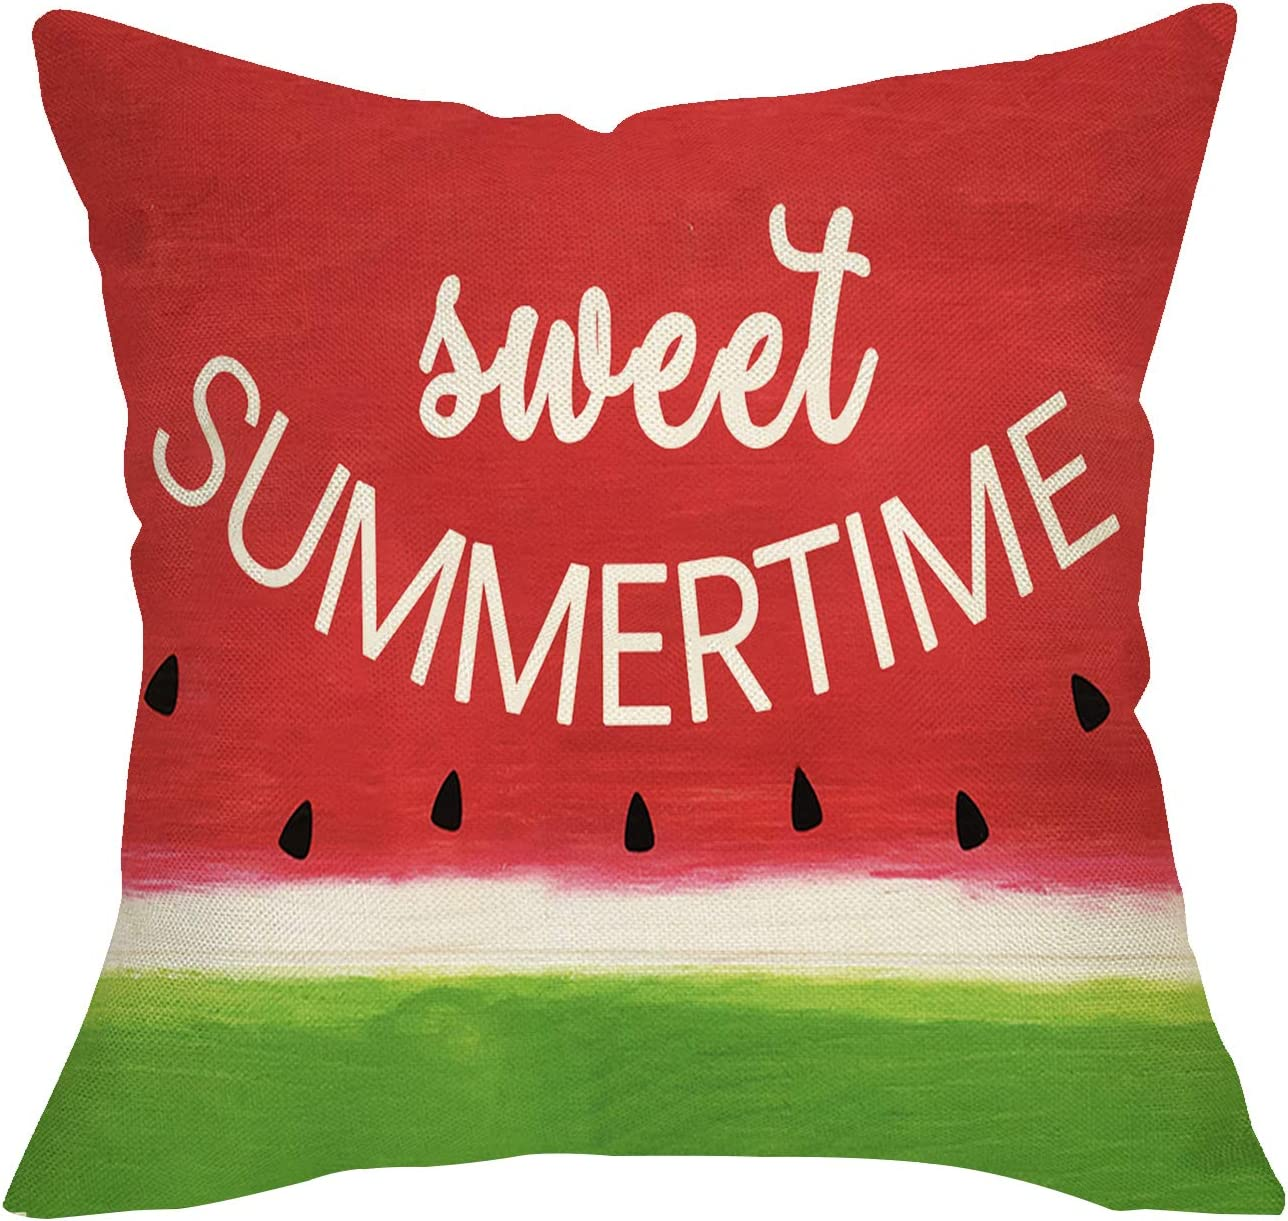 Softxpp Home Decorative Throw Pillow Cover Sweet Summer Time, Watermelon Sign Cushion Case Decor Seasonal Rustic Home Decorations, Square Pillowcase for Sofa Couch 18 x 18 Cotton Linen